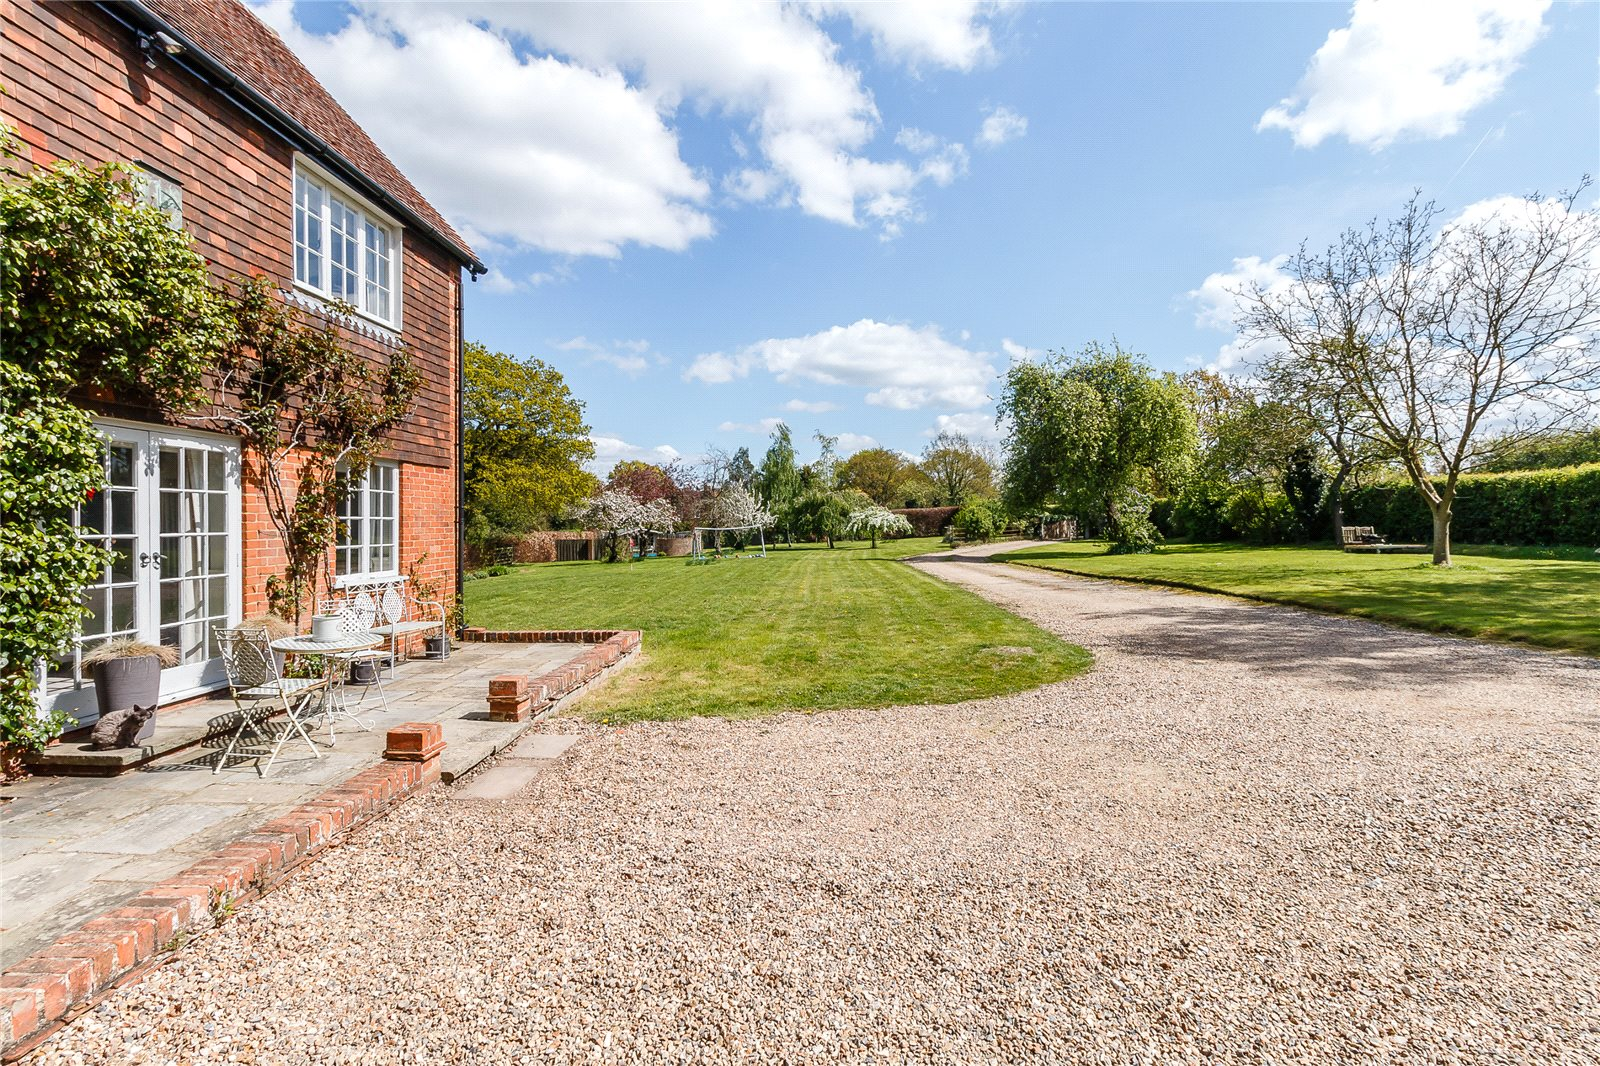 Additional photo for property listing at Sheepcote Lane, Paley Street, Nr Maidenhead, Berkshire, SL6 Berkshire, 英格兰